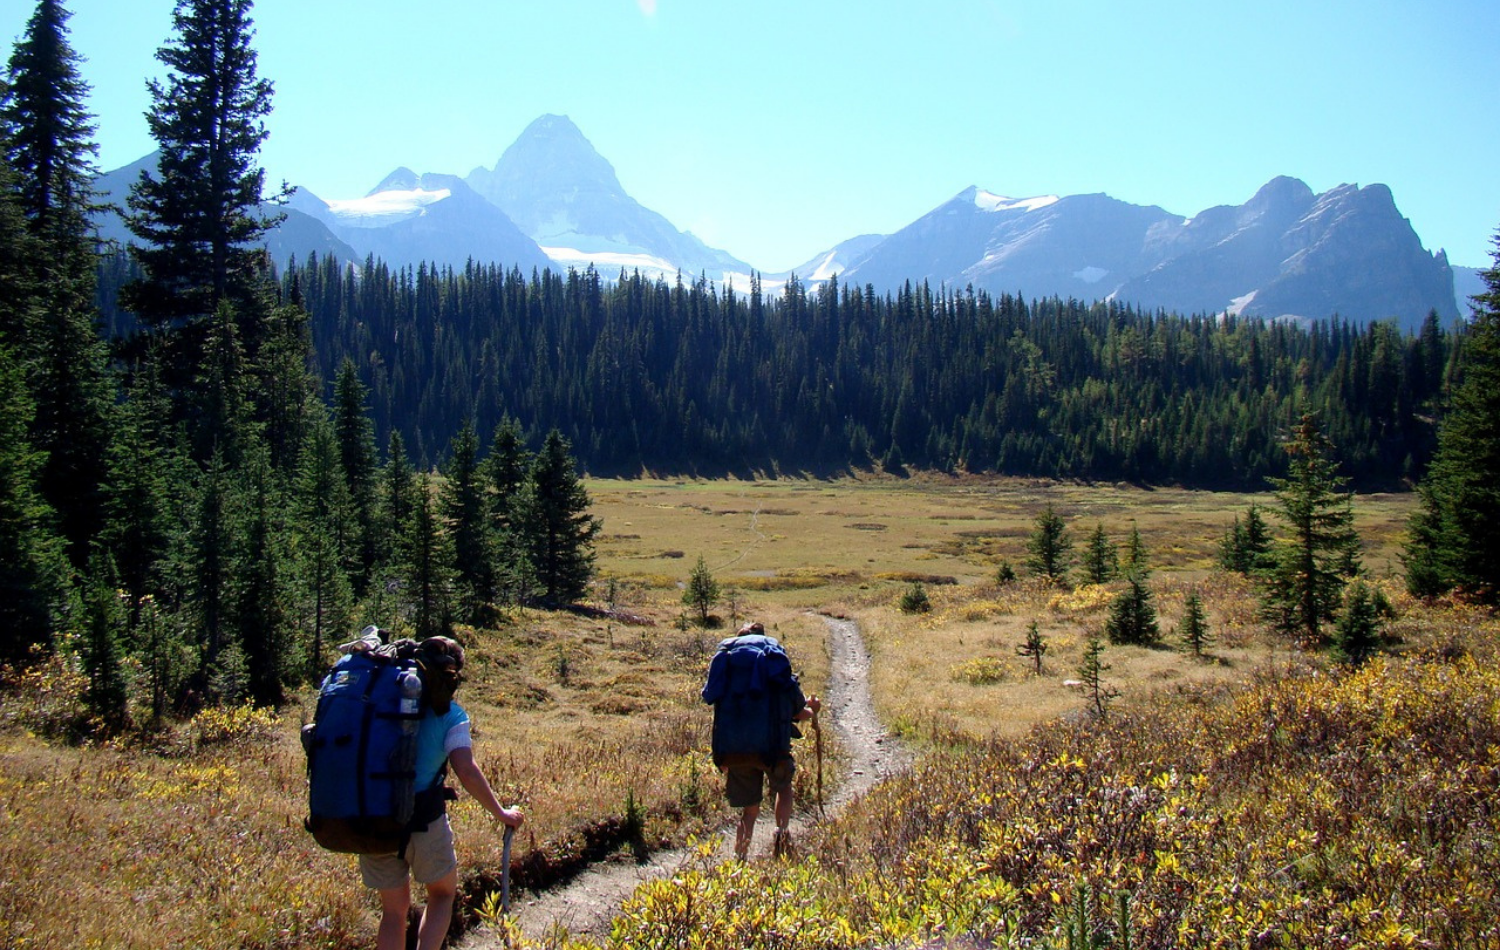 Best-Trails-and-Places-to-Hike-in-Kremmling.-CO---Grand-County.png